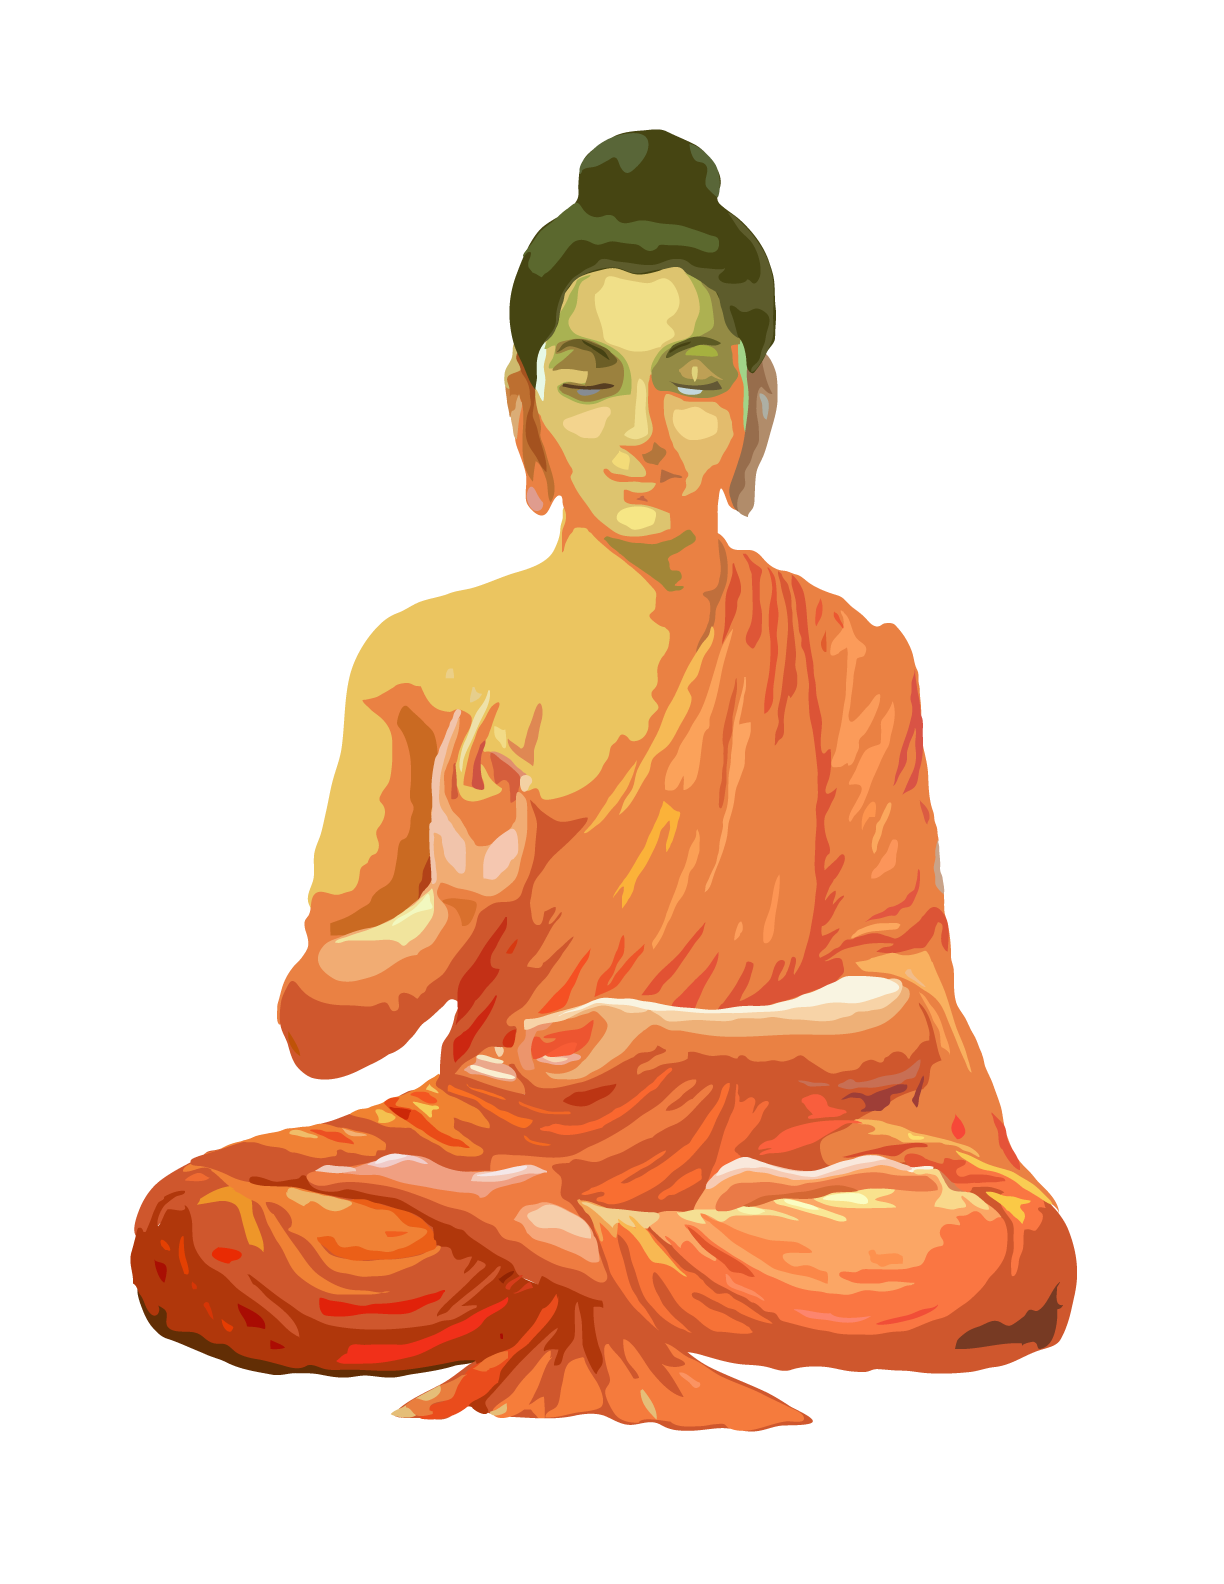 Png images transparent free. Buddha clipart clear vector free